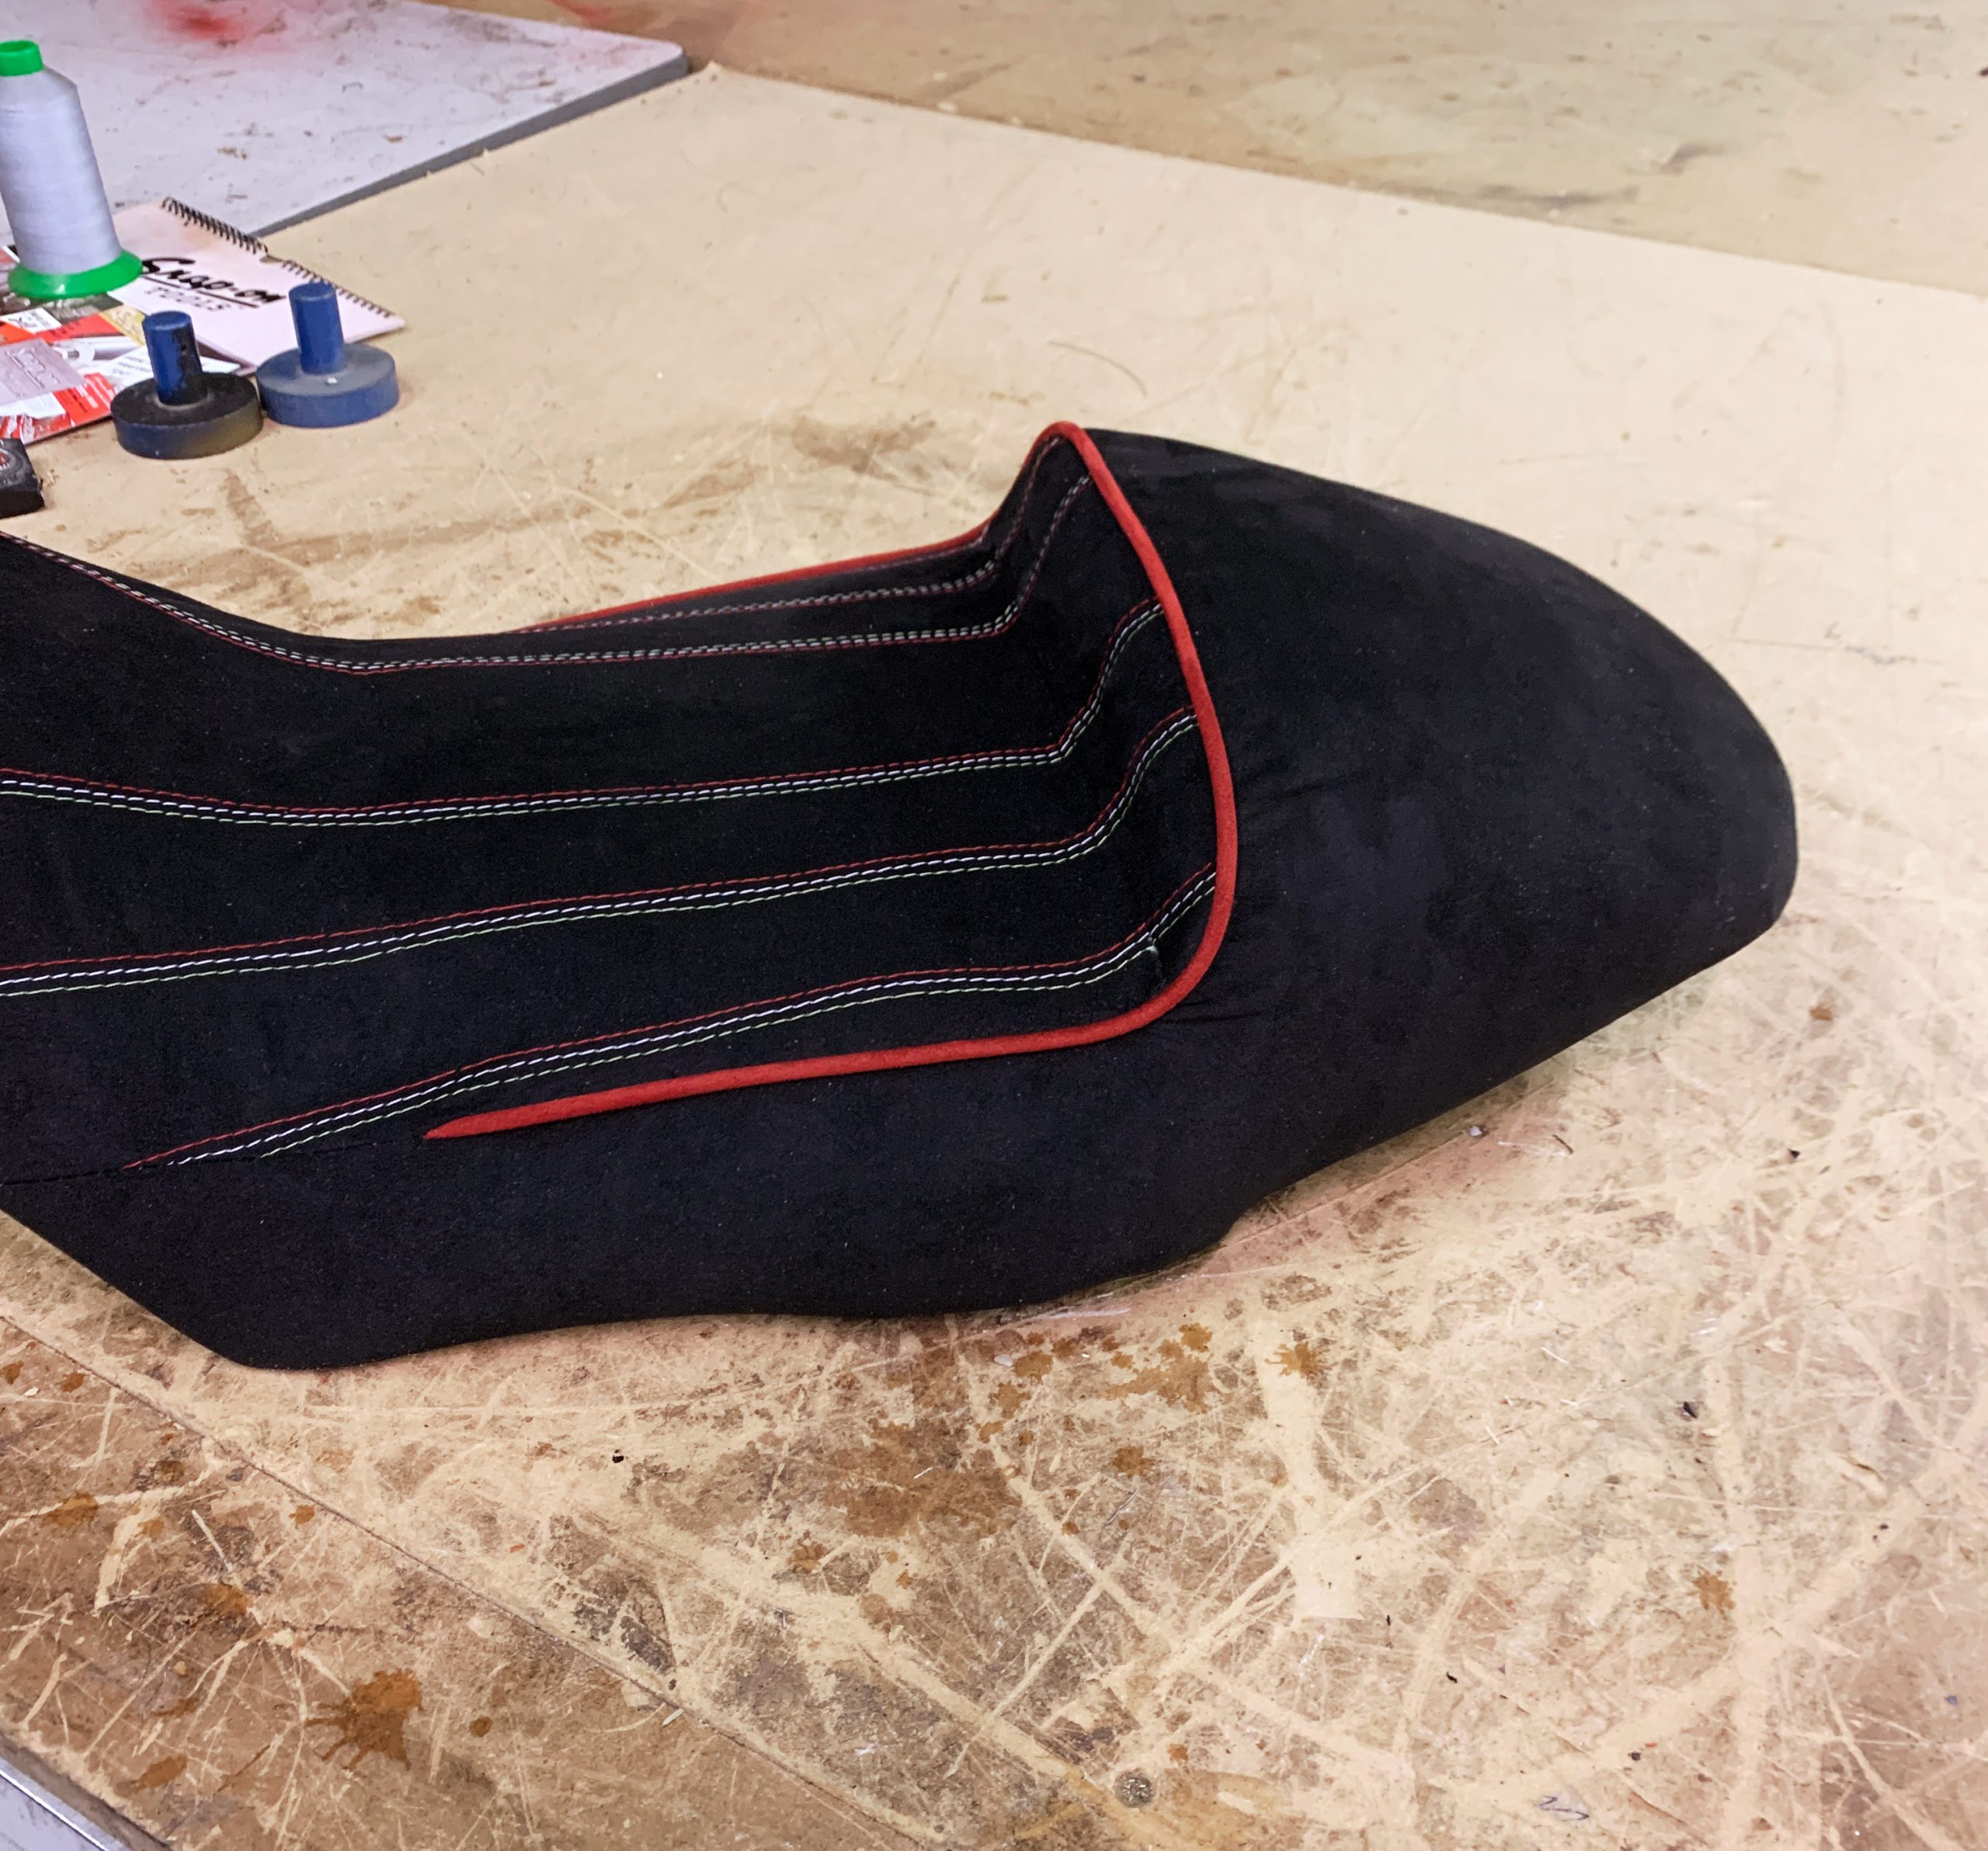 Black+fabric+motorcycle+seat+with+red+and+white+stitching+and+red+piping